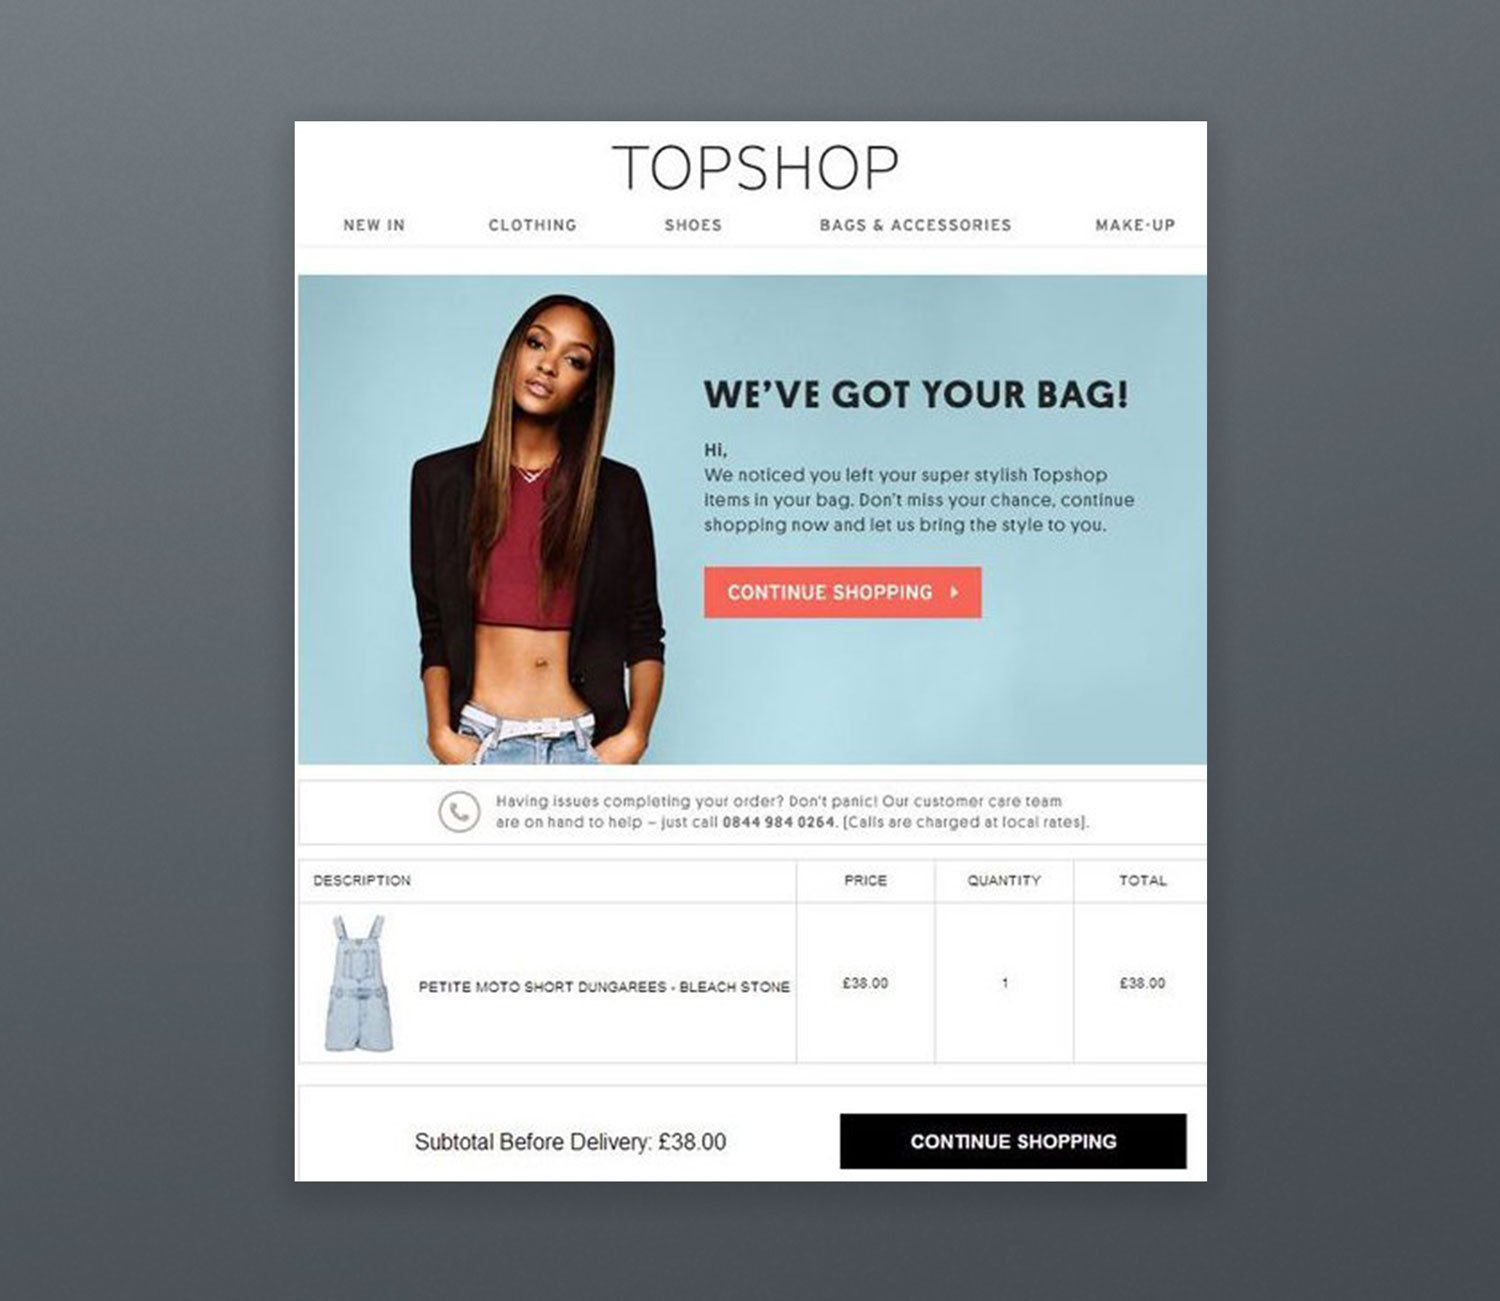 Topshop Email Marketing Example